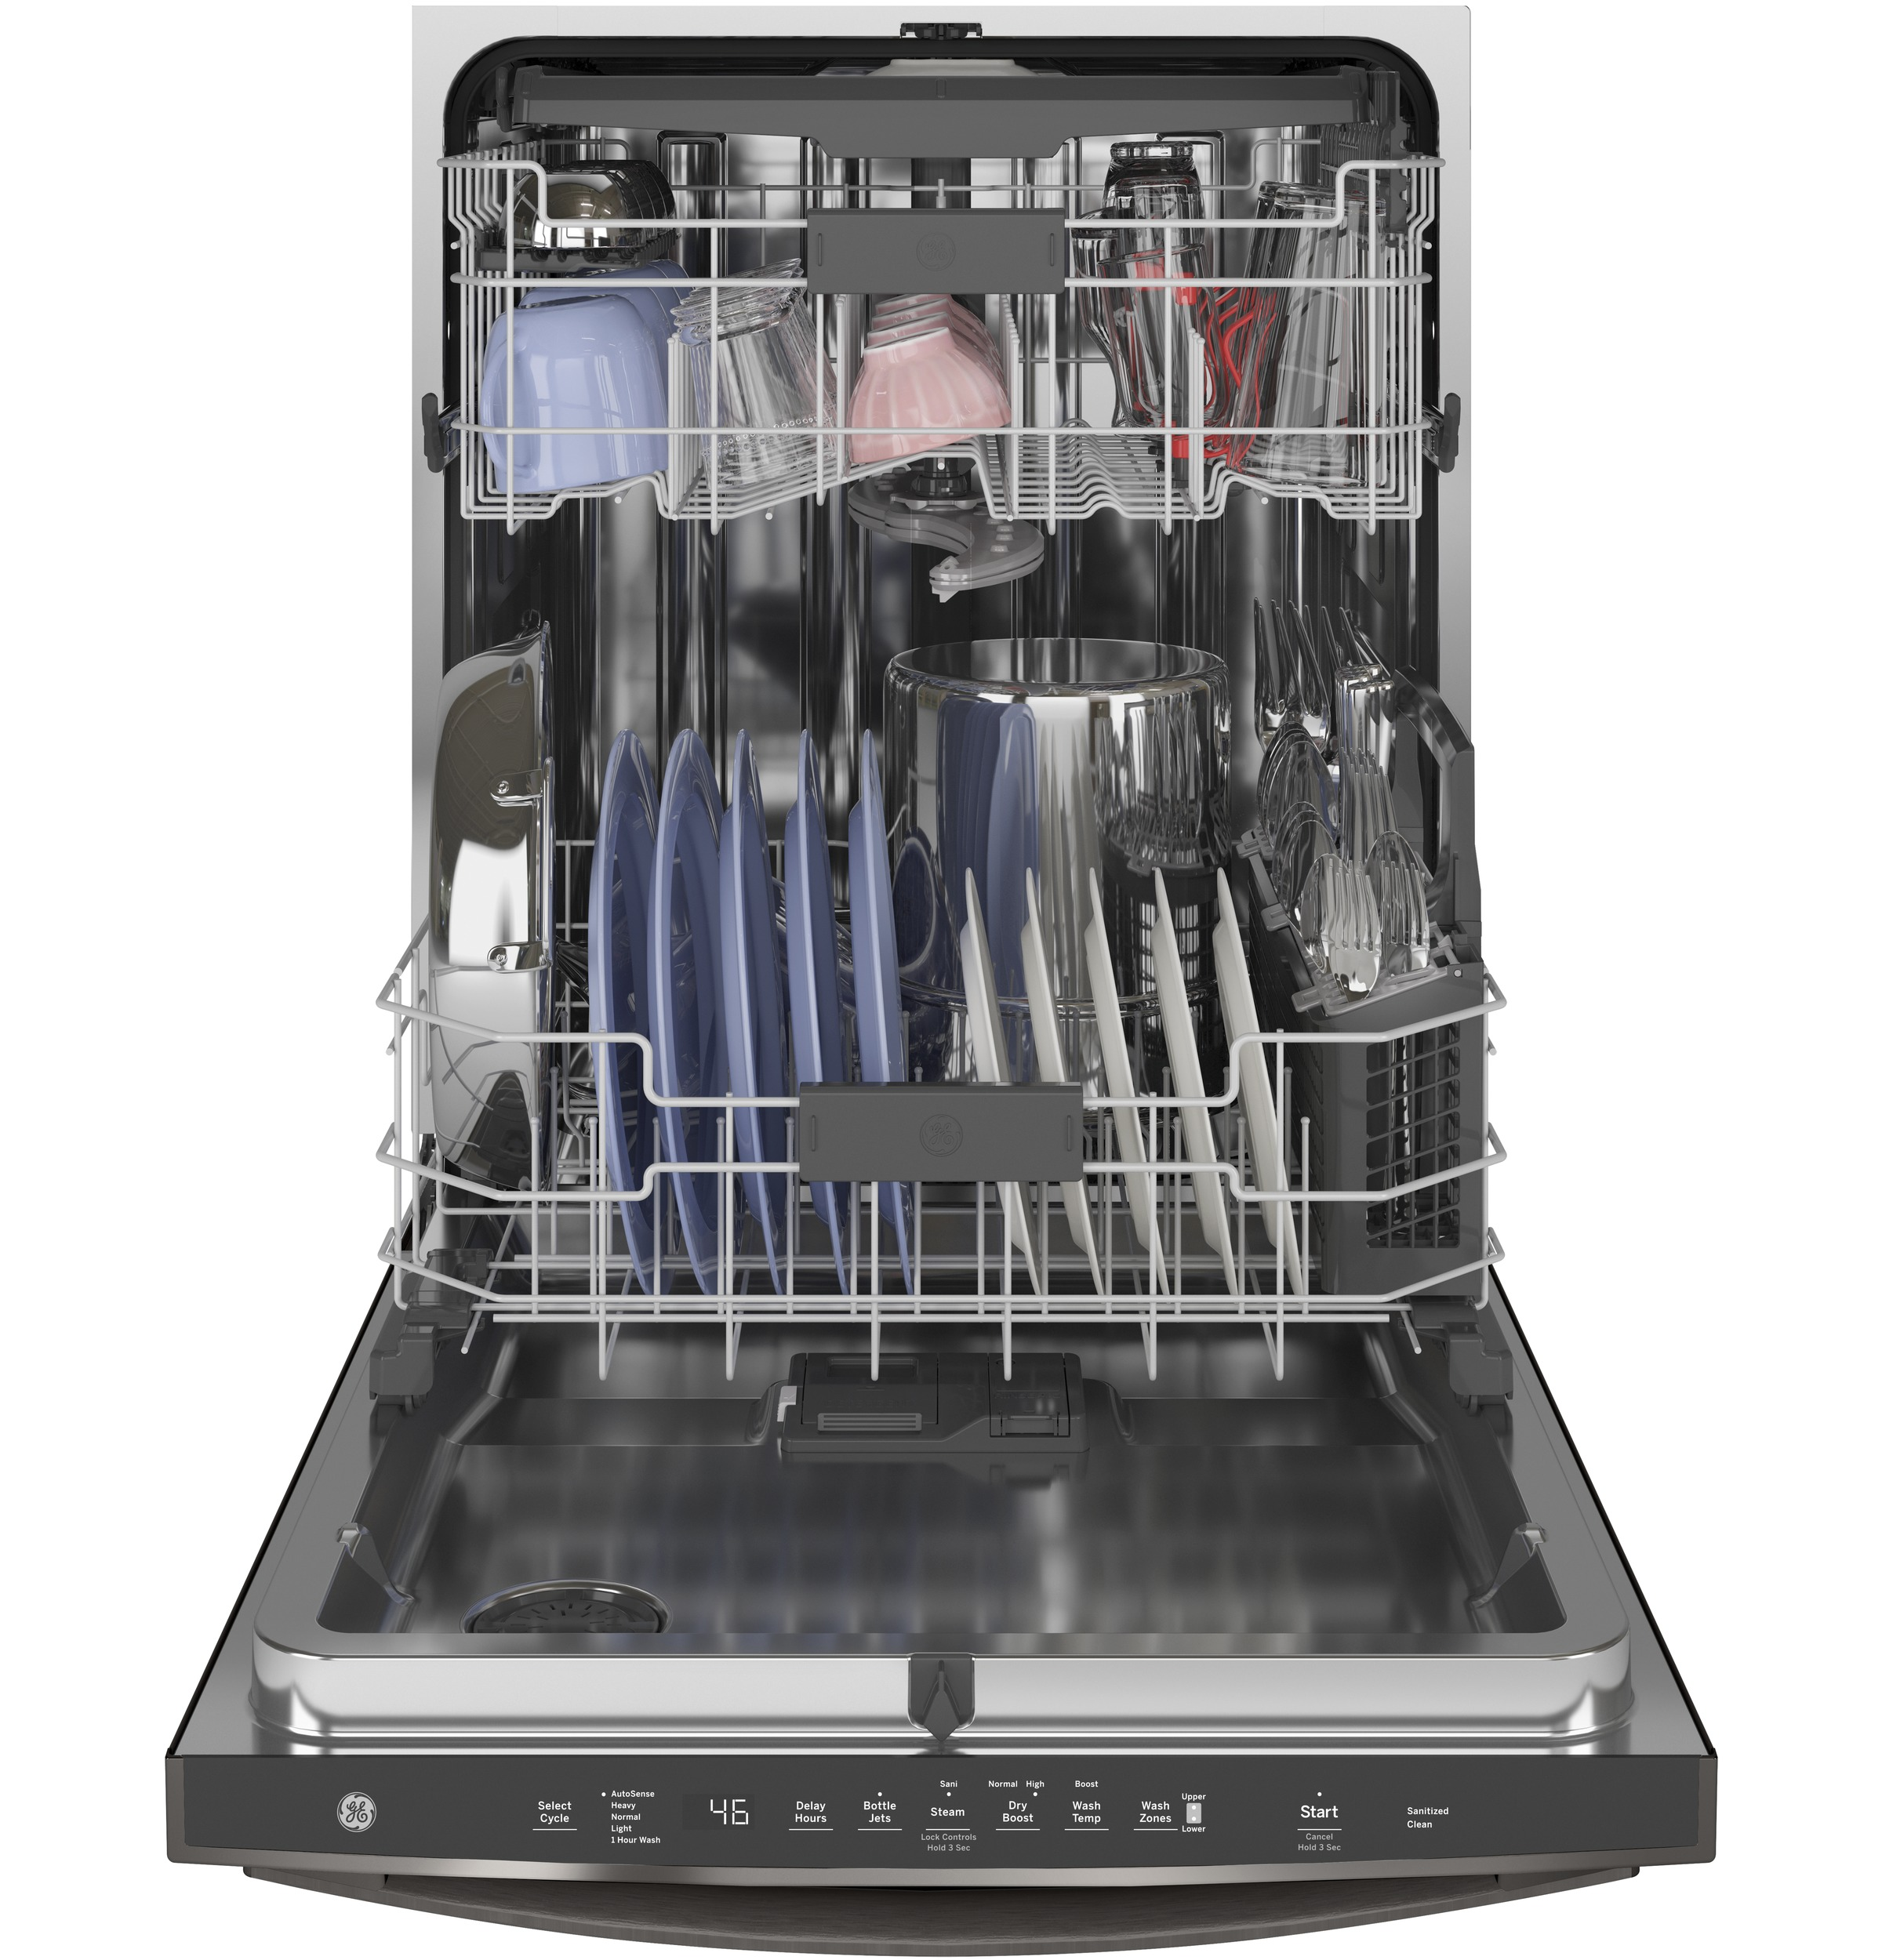 Model: GDT665SFNDS | GE GE® Stainless Steel Interior Dishwasher with Hidden Controls